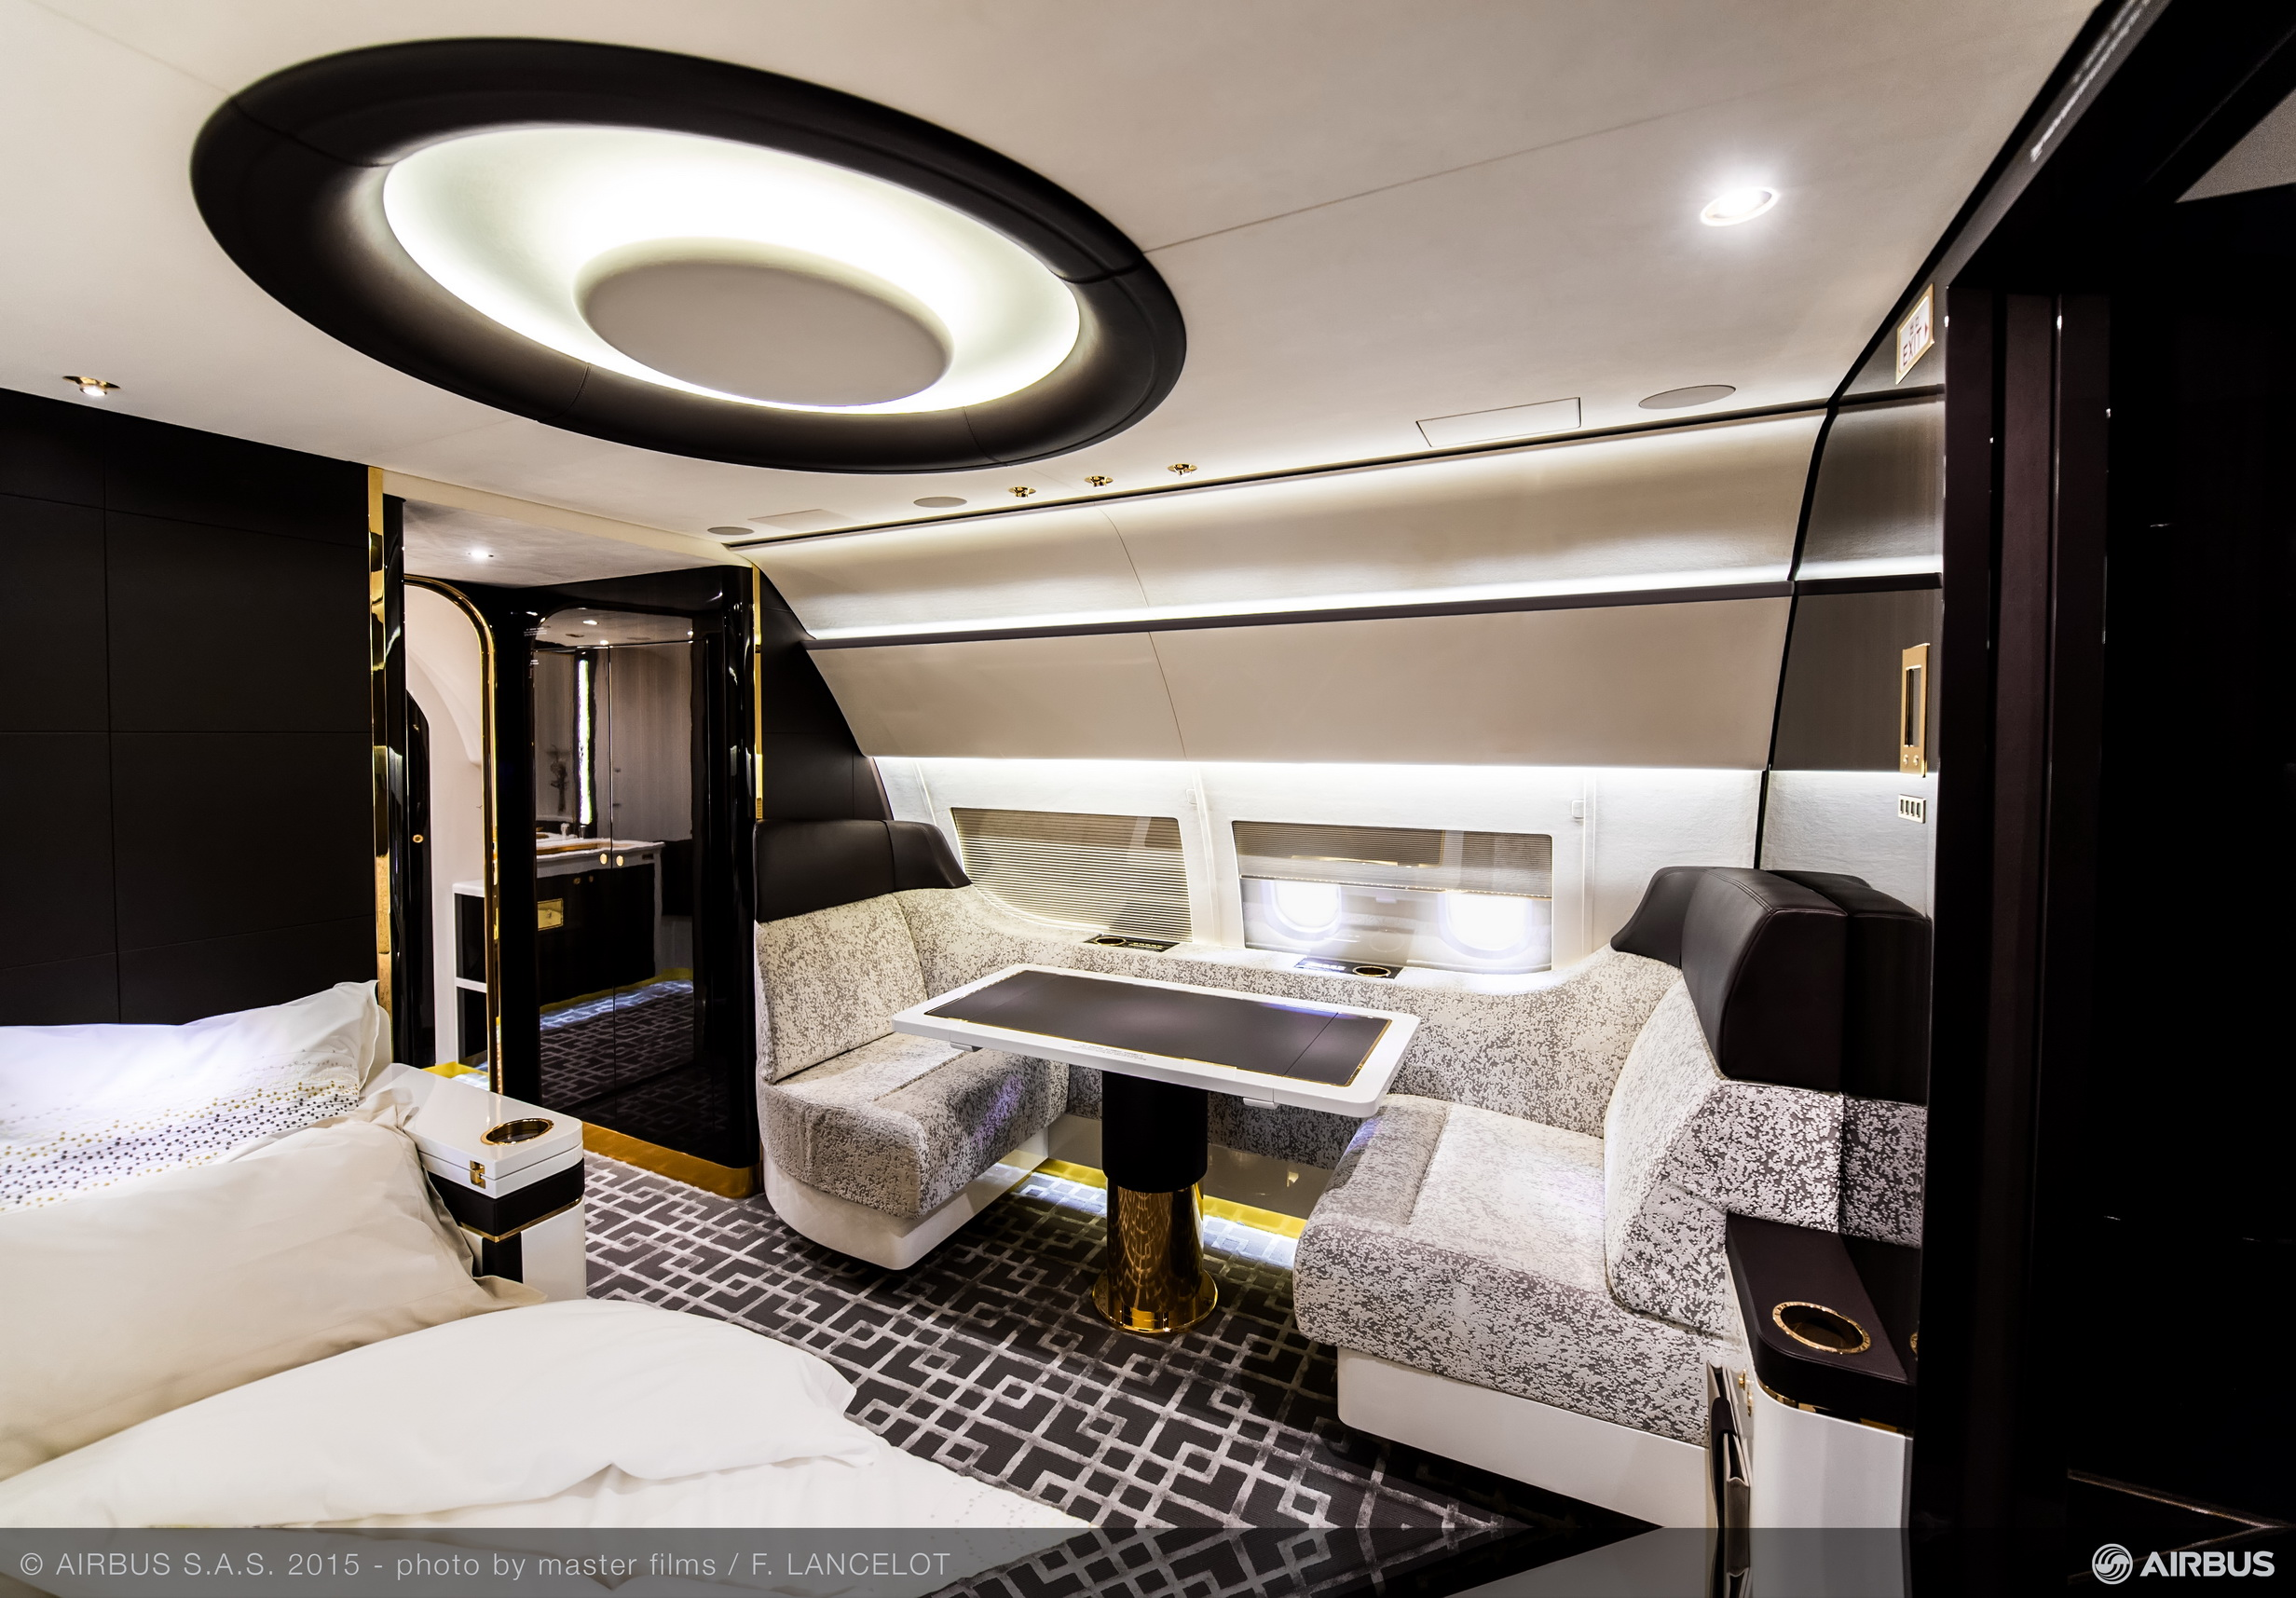 luxury interior of airbus corporate jet inspired by art deco trains the luxpad. Black Bedroom Furniture Sets. Home Design Ideas